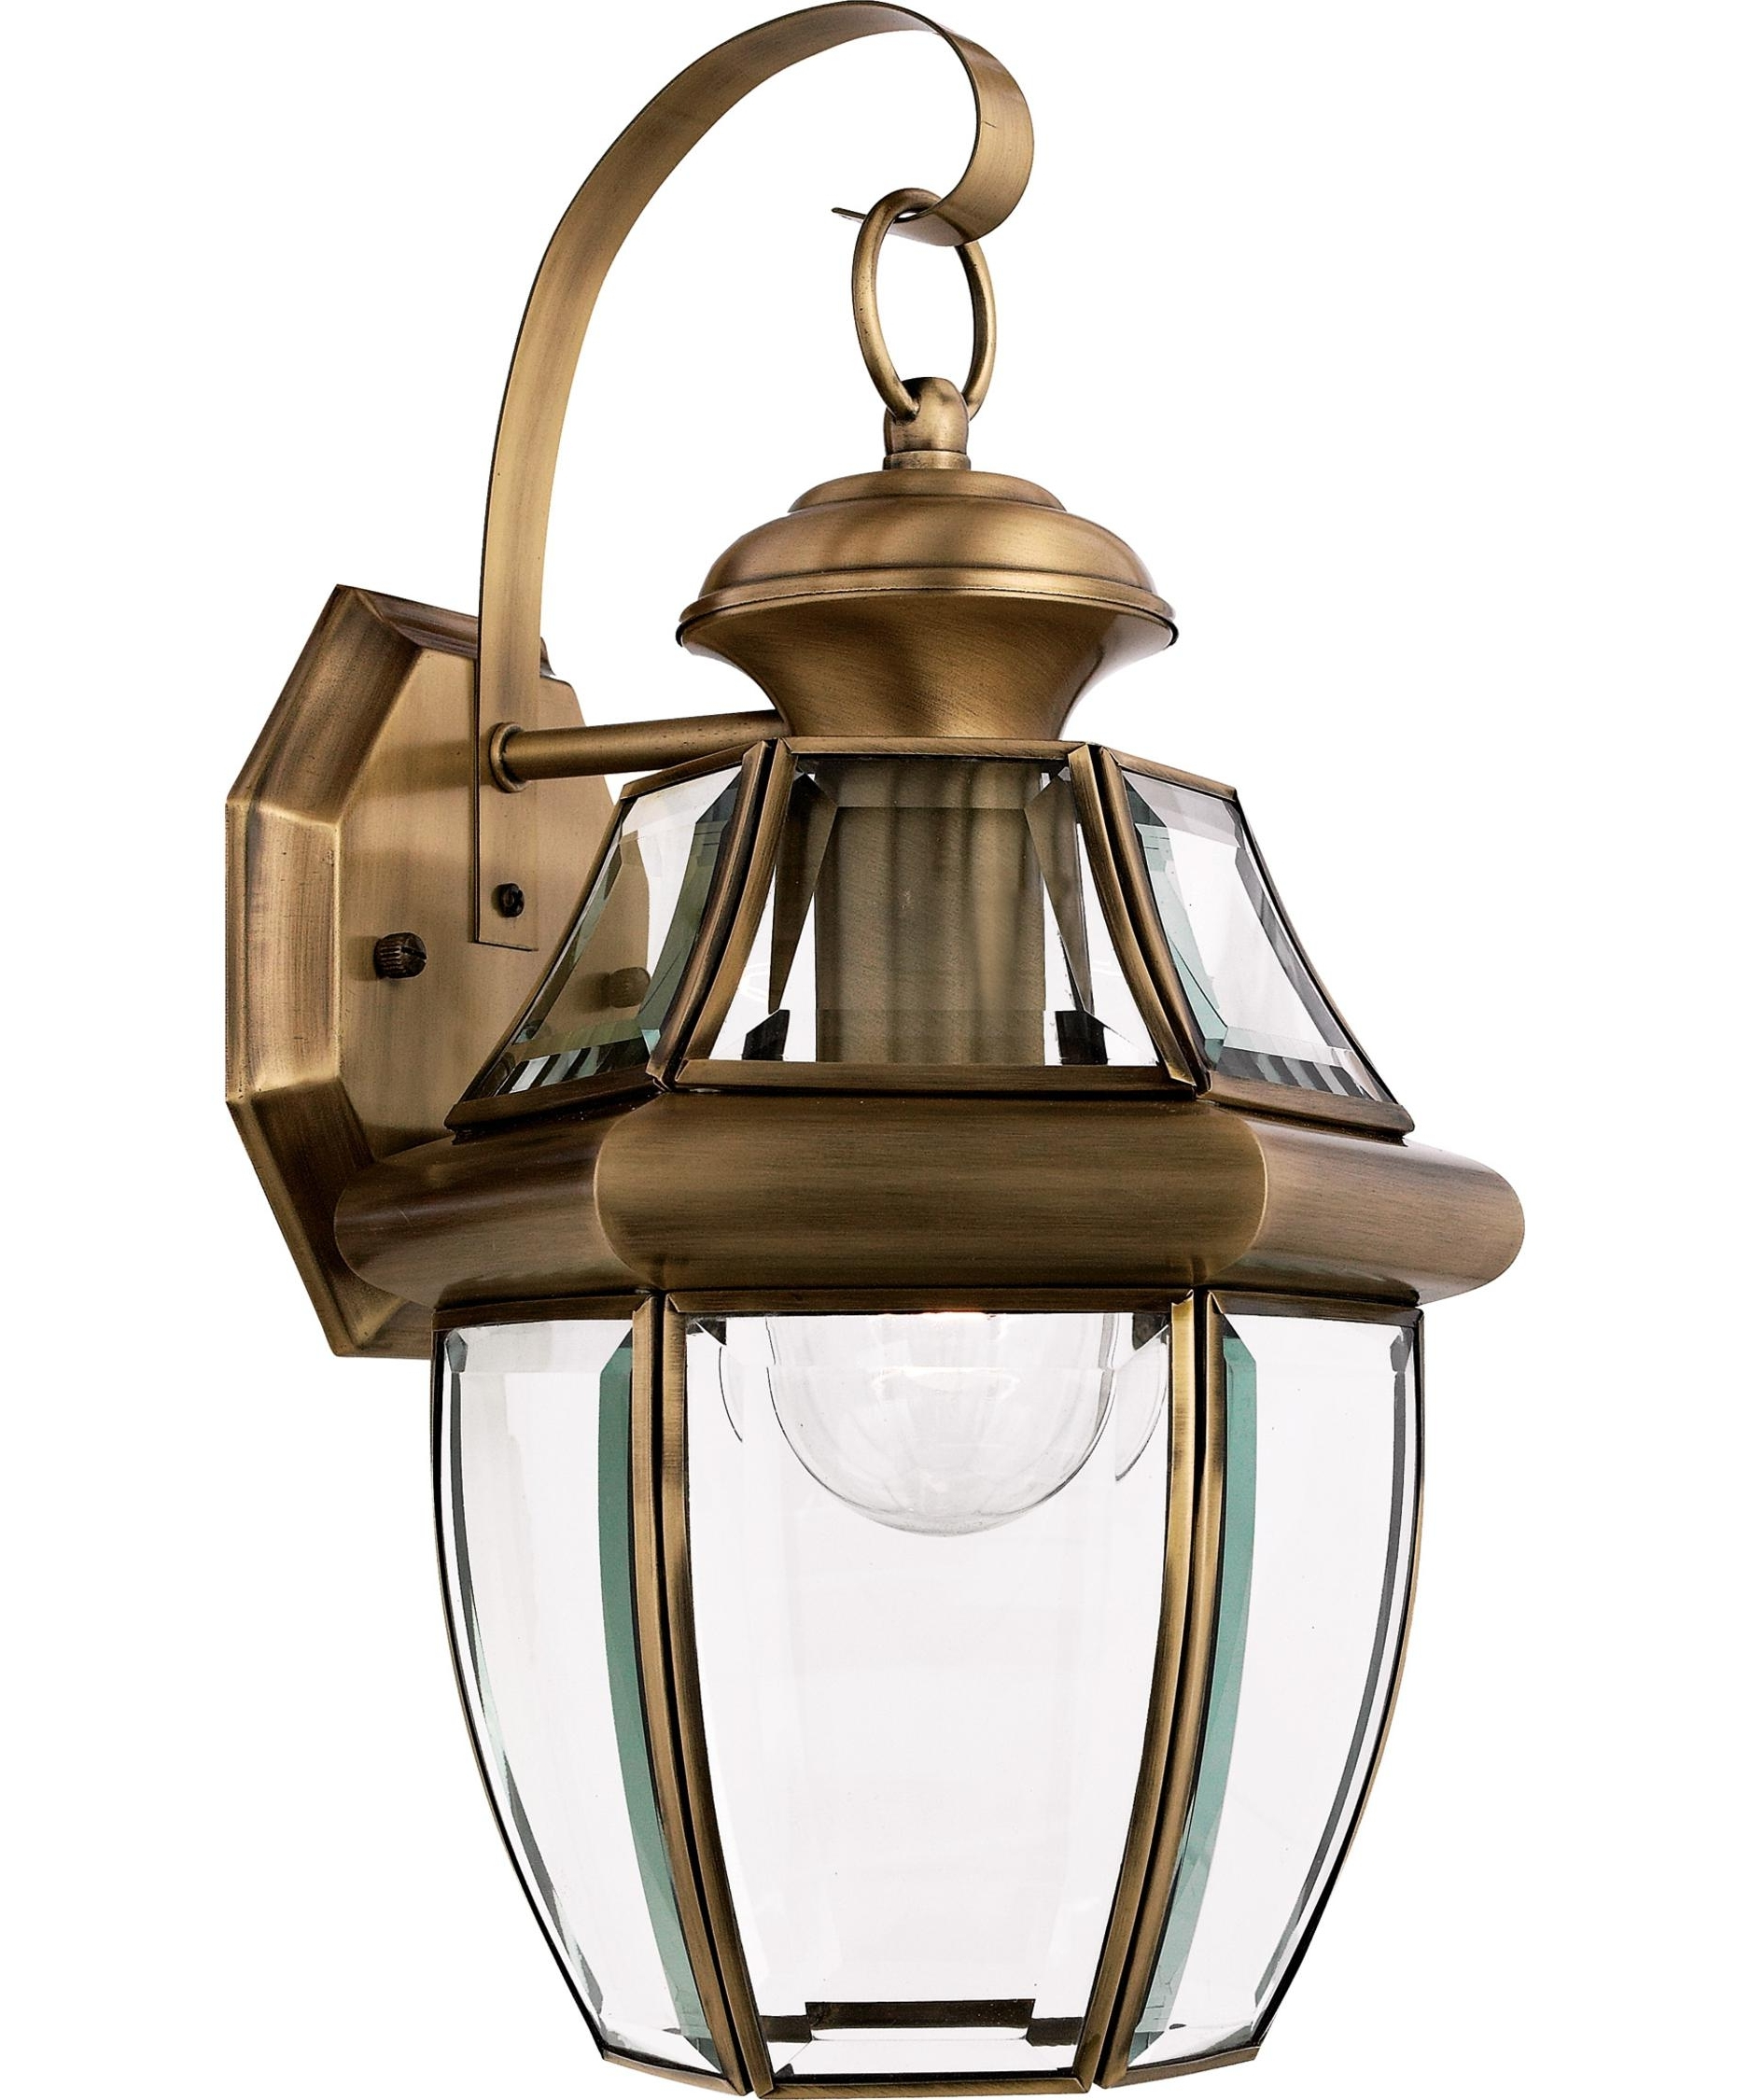 Light : Fresh Antique Brass Outdoor Wall Lights In Solar Uk With Throughout Most Current Outdoor Wall Lantern Lighting (View 8 of 20)